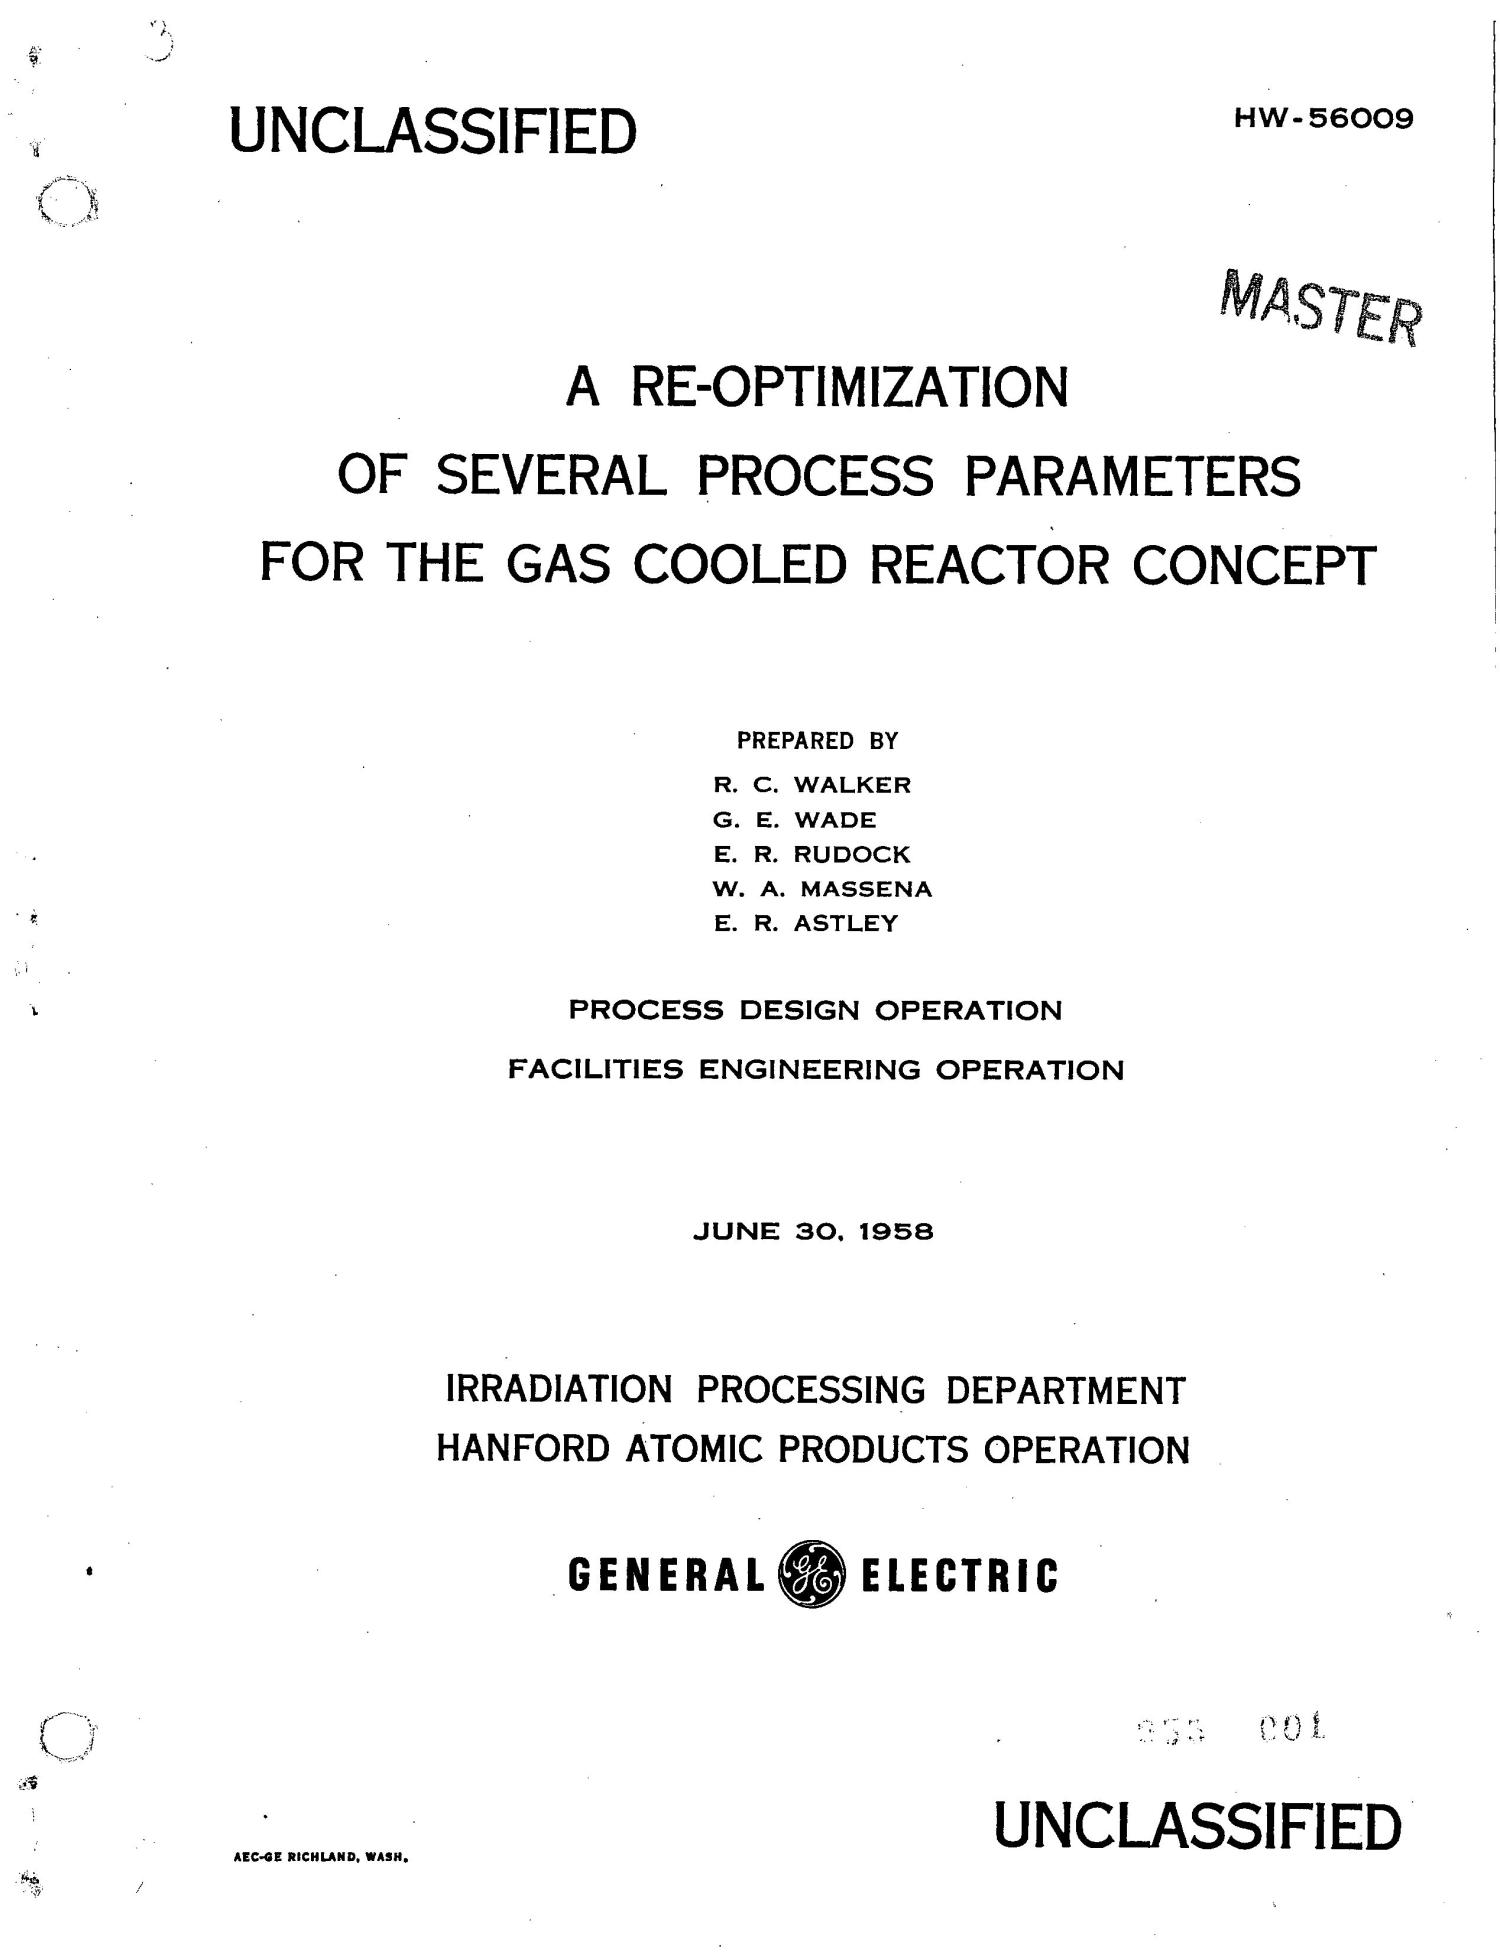 A Re-Optimization of Several Process Parameters for the Gas Cooled Reactor Concept                                                                                                      [Sequence #]: 1 of 96